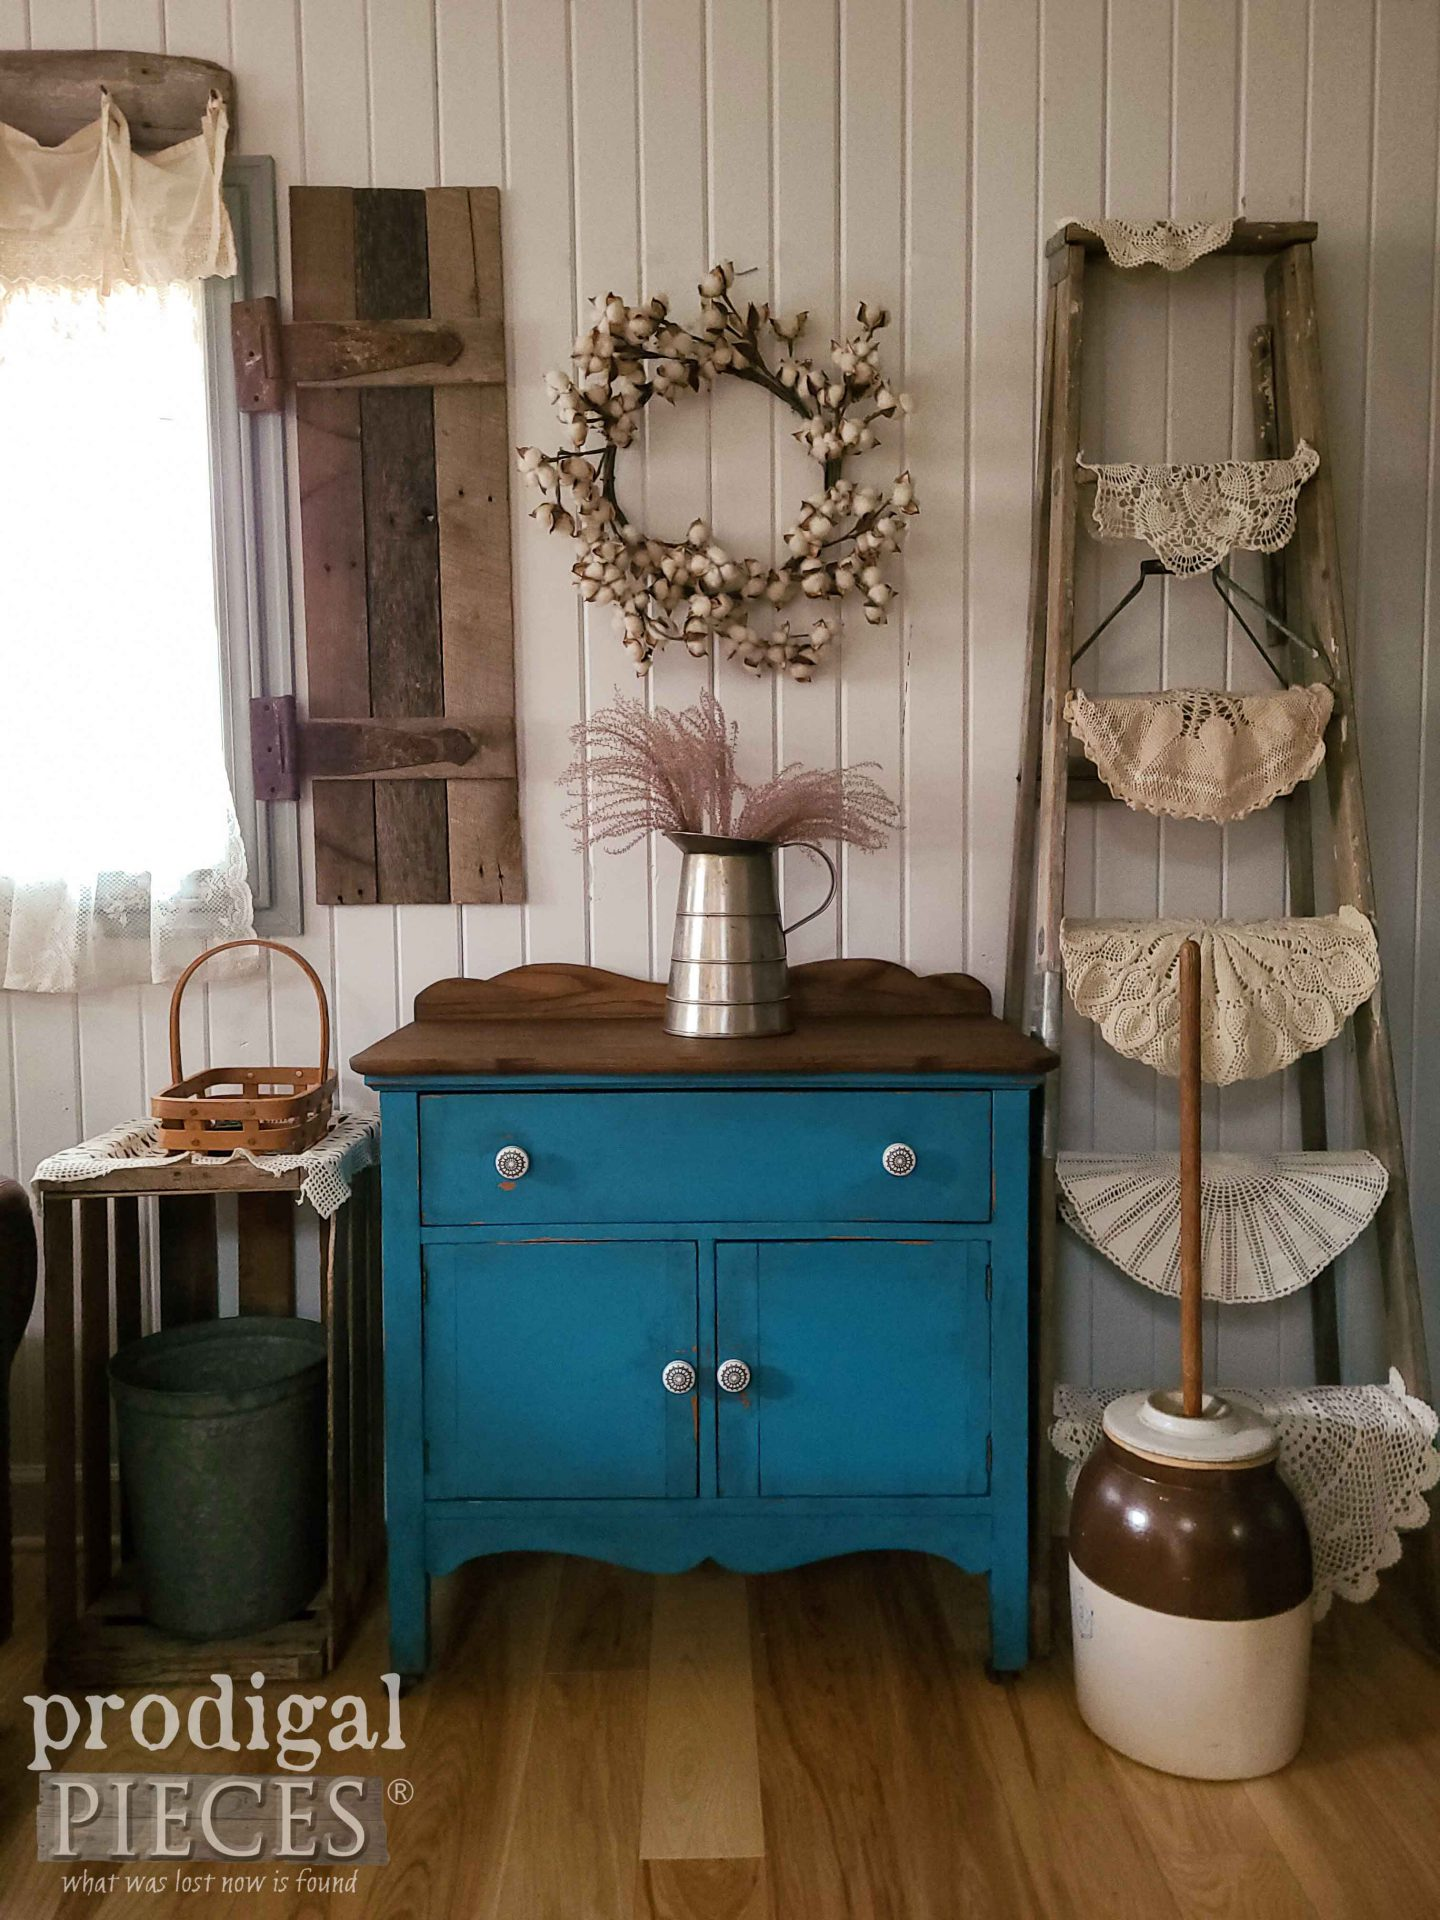 Antique Farmhouse Wash Stand with Updated Style by Larissa of Prodigal Pieces | prodigalpieces.com #prodigalpieces #farmhouse #diy #furniture #home #homedecor